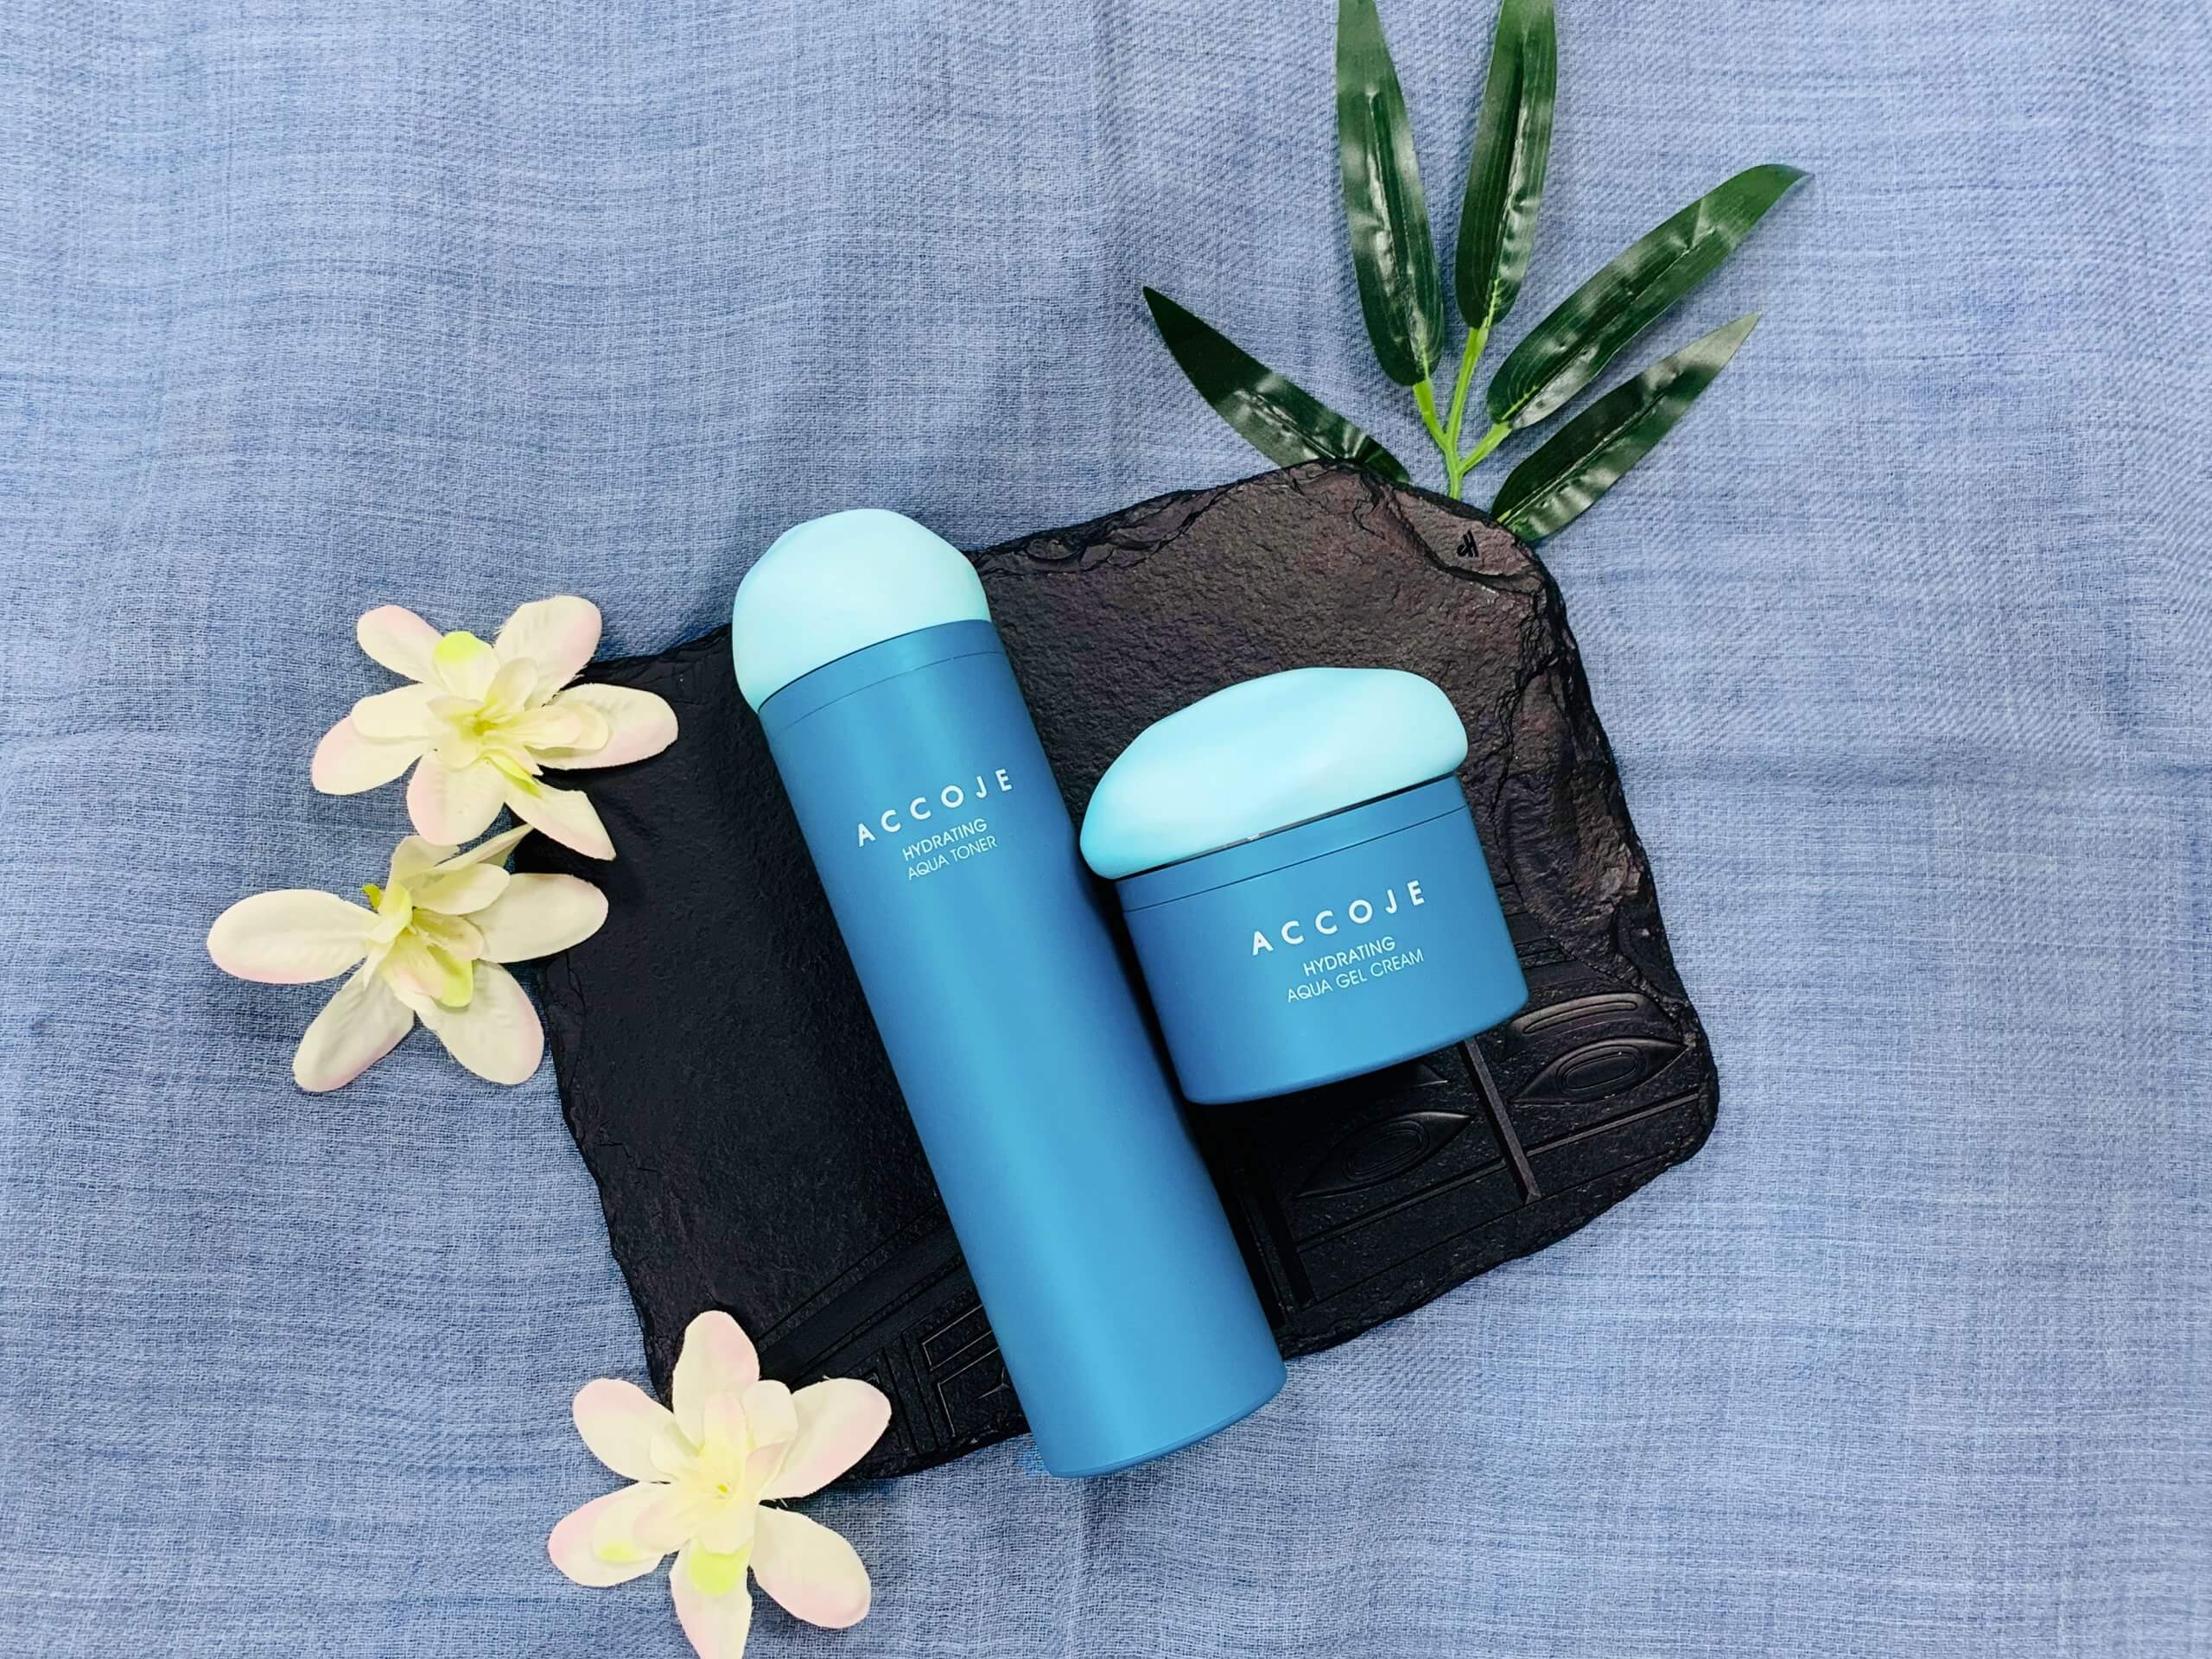 Hydrating Aqua Toner (130 ml) + Hydrating Aqua Gel Cream (50 ml) Gift Box